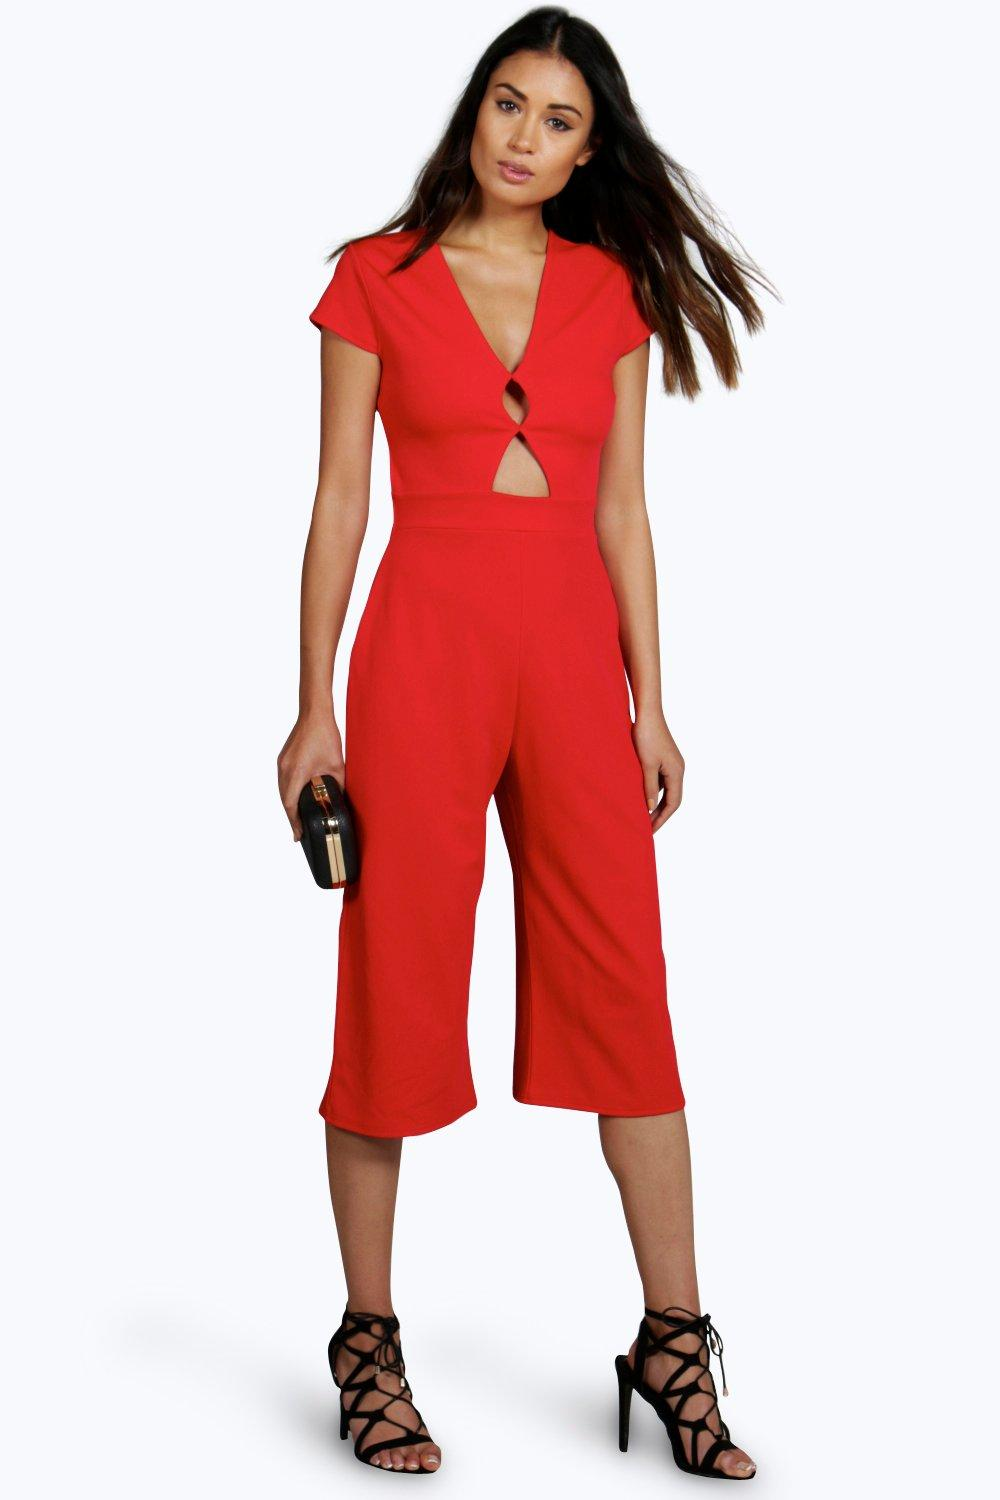 boohoo Lissa Cut Out Culotte One Piece - red $12.00 AT vintagedancer.com